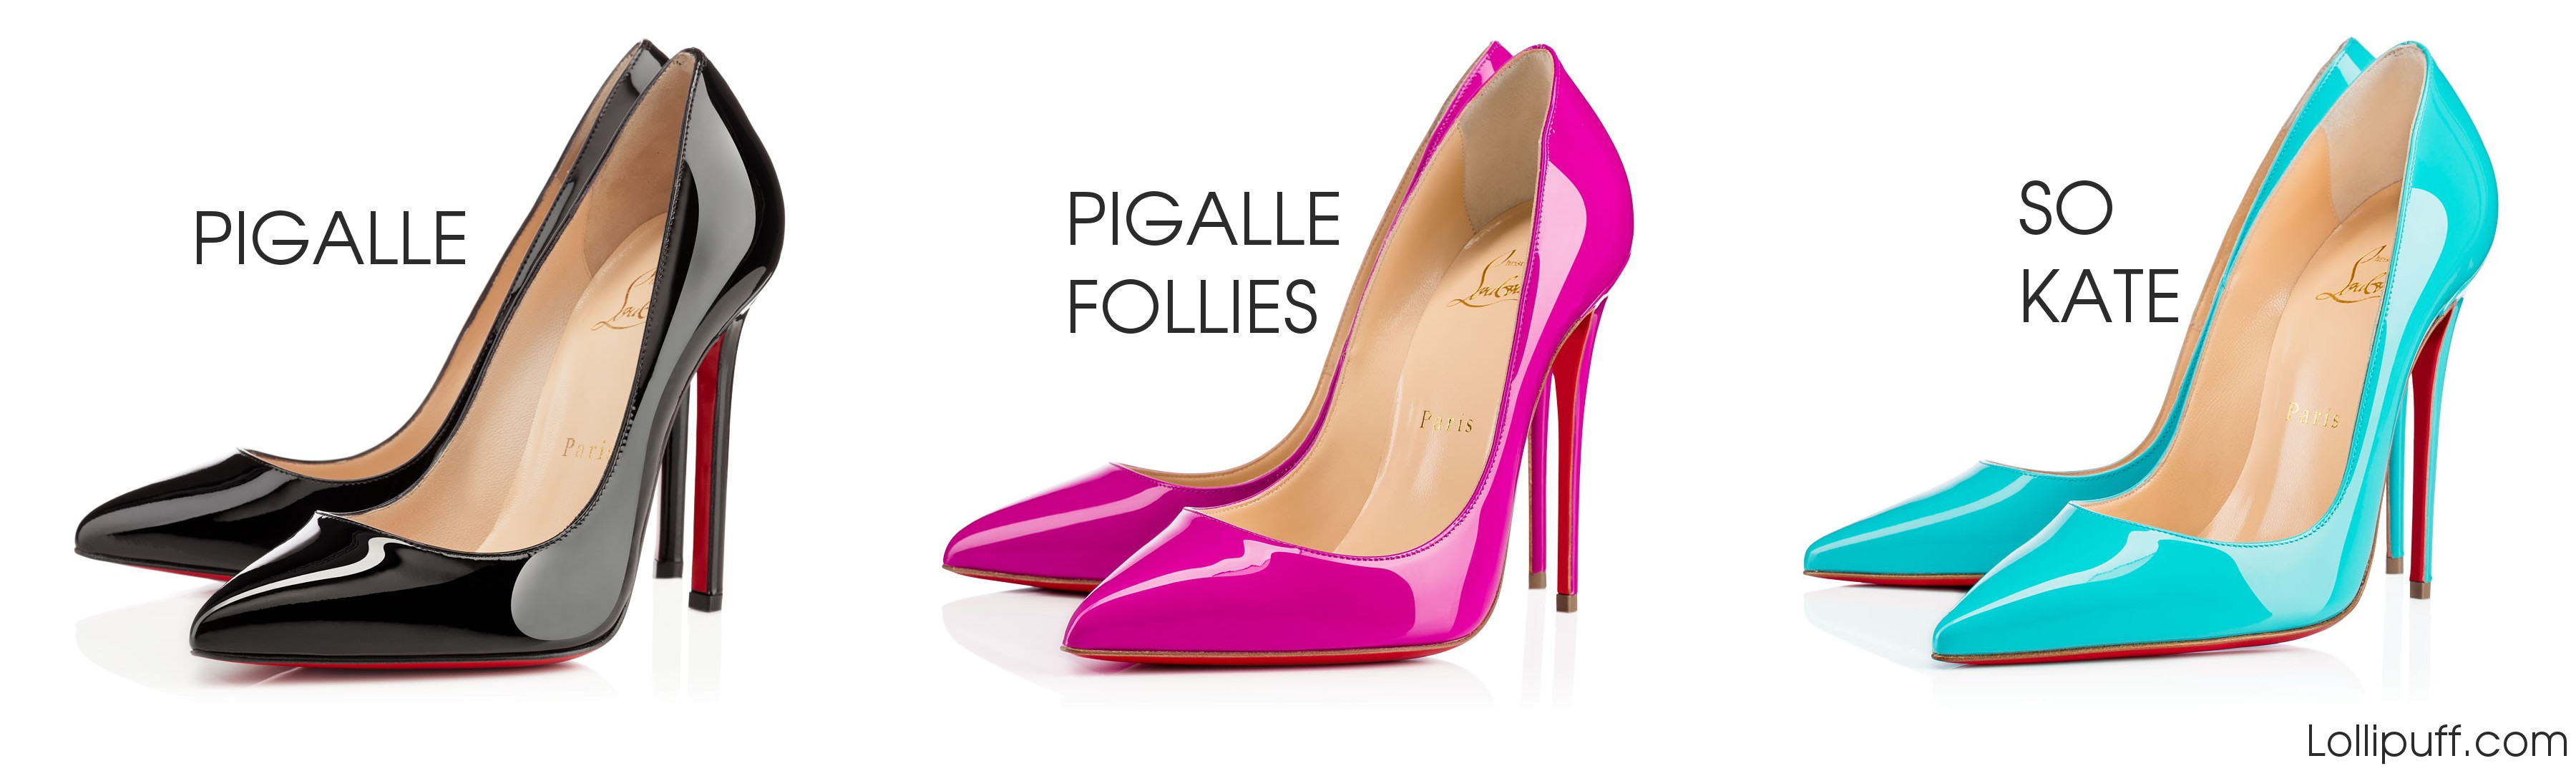 christian louboutin pigalle follies pump